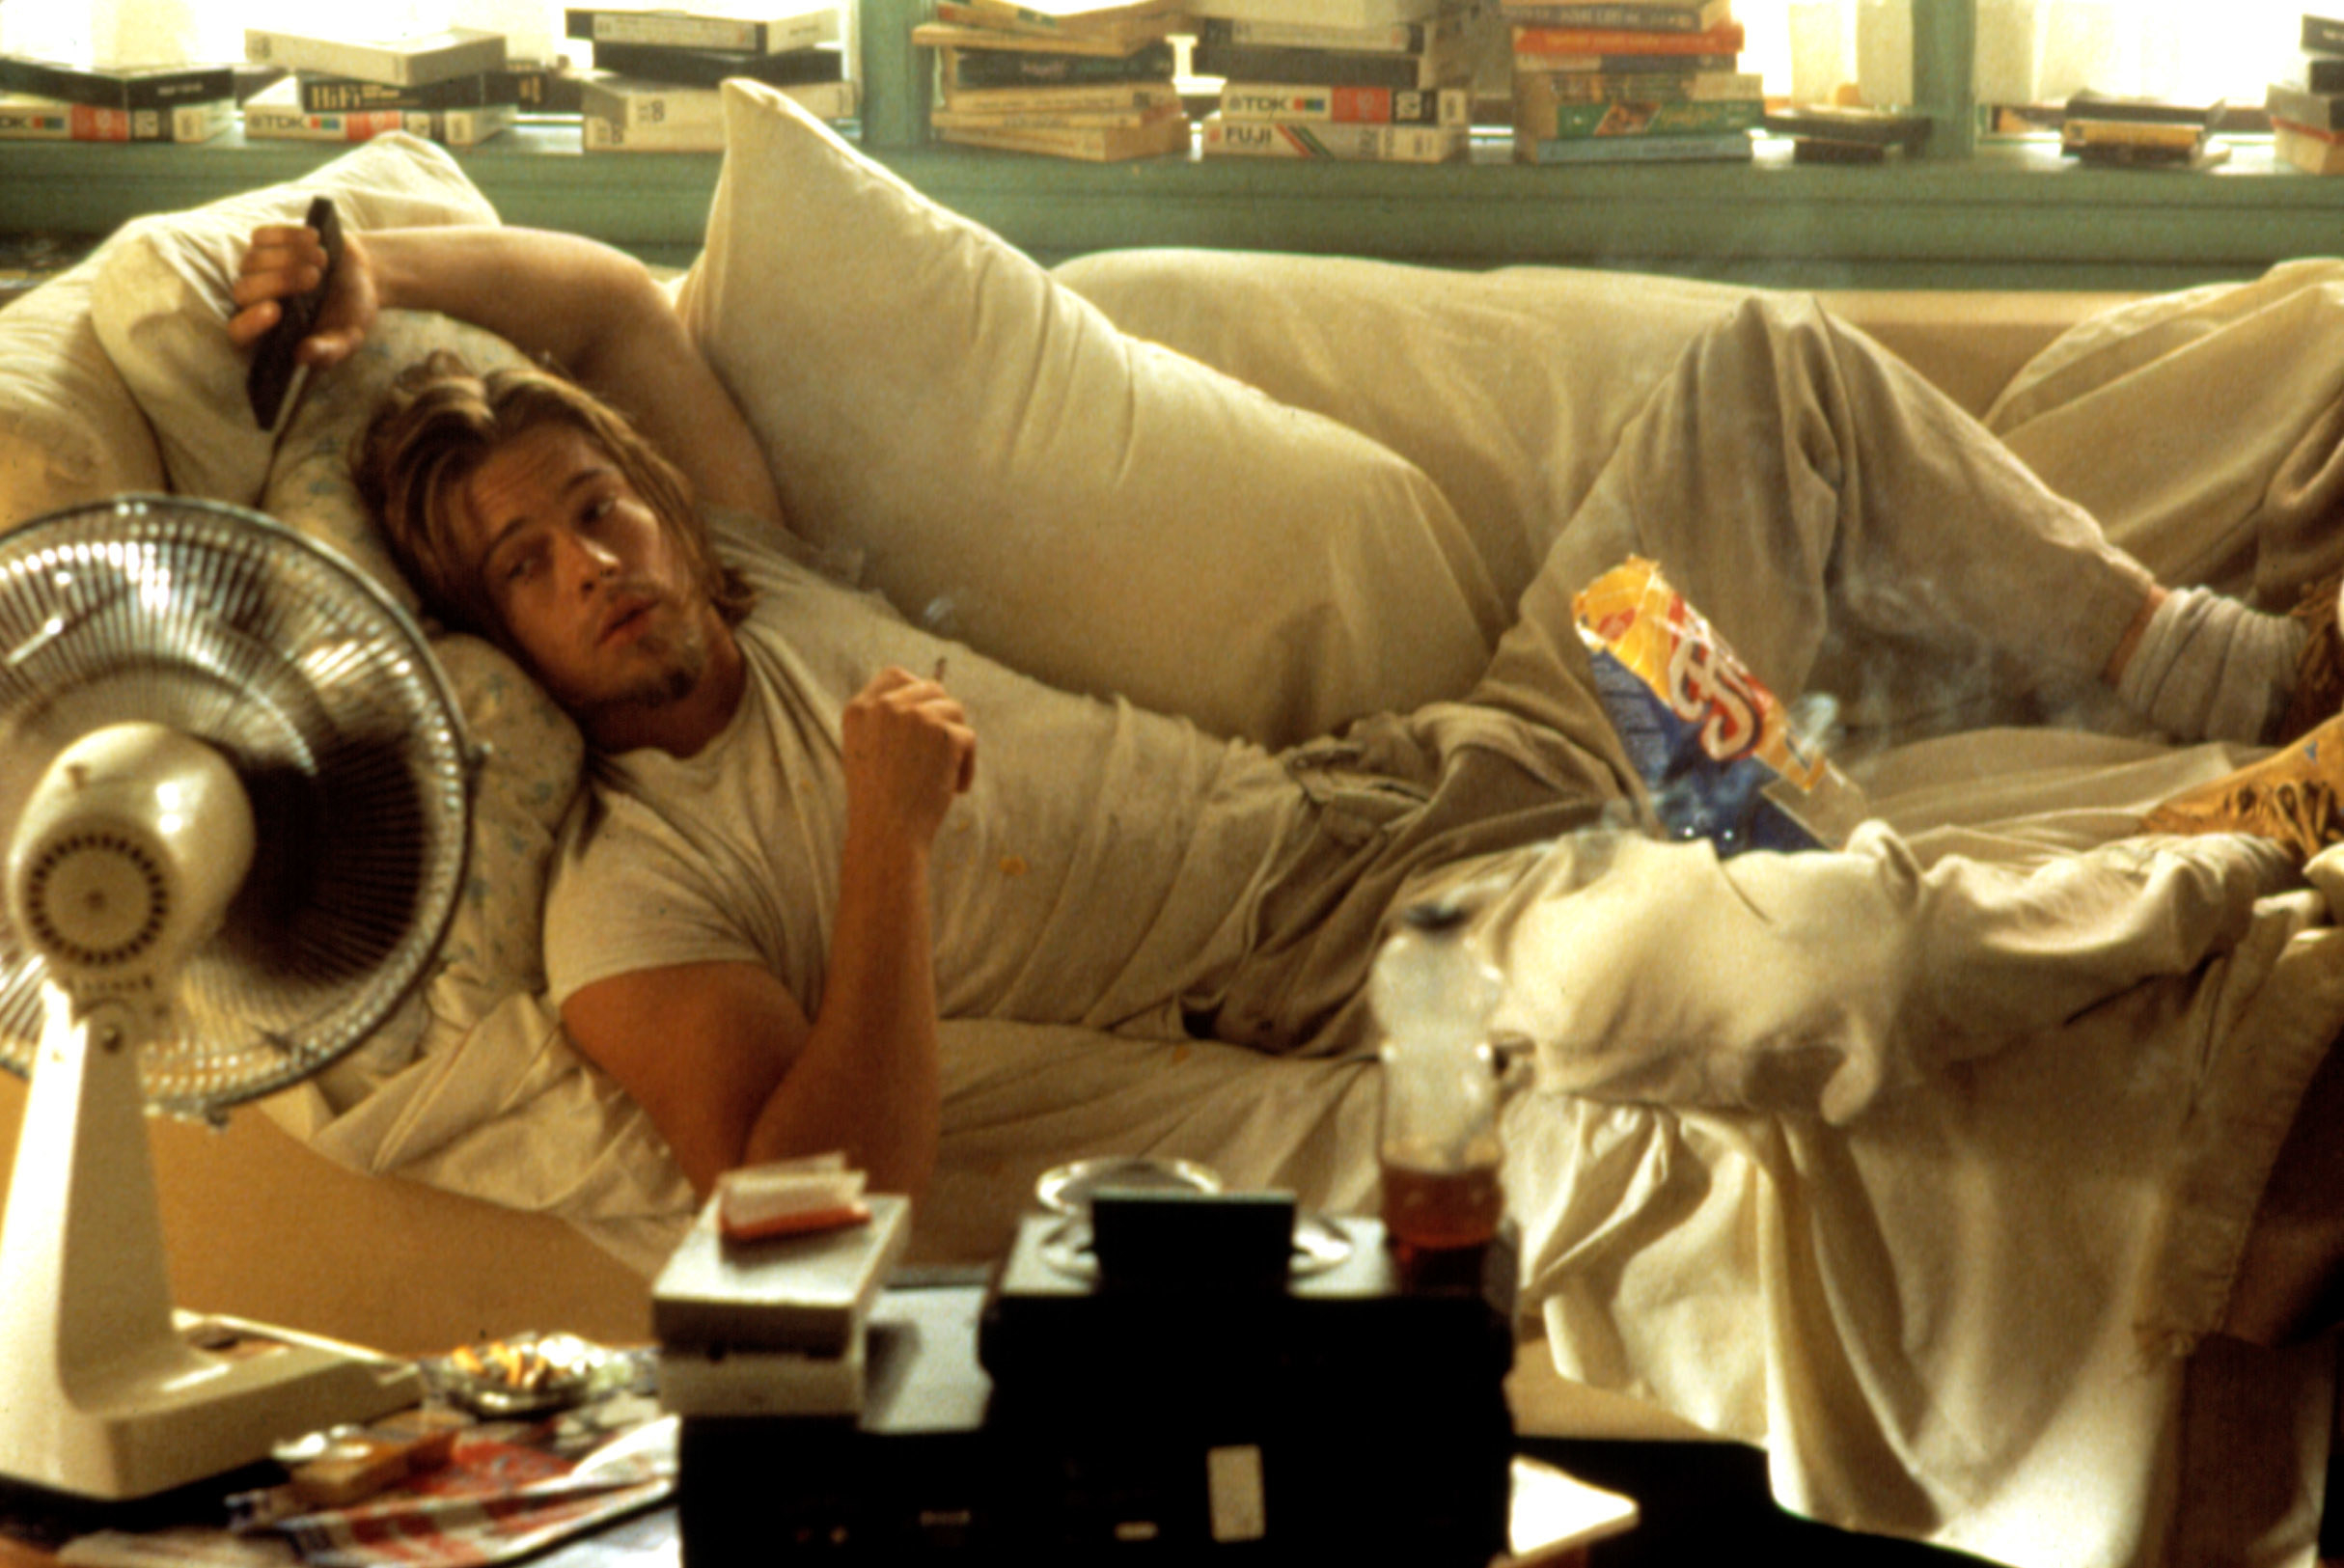 Brad Pitt lounging on a couch in True Romance